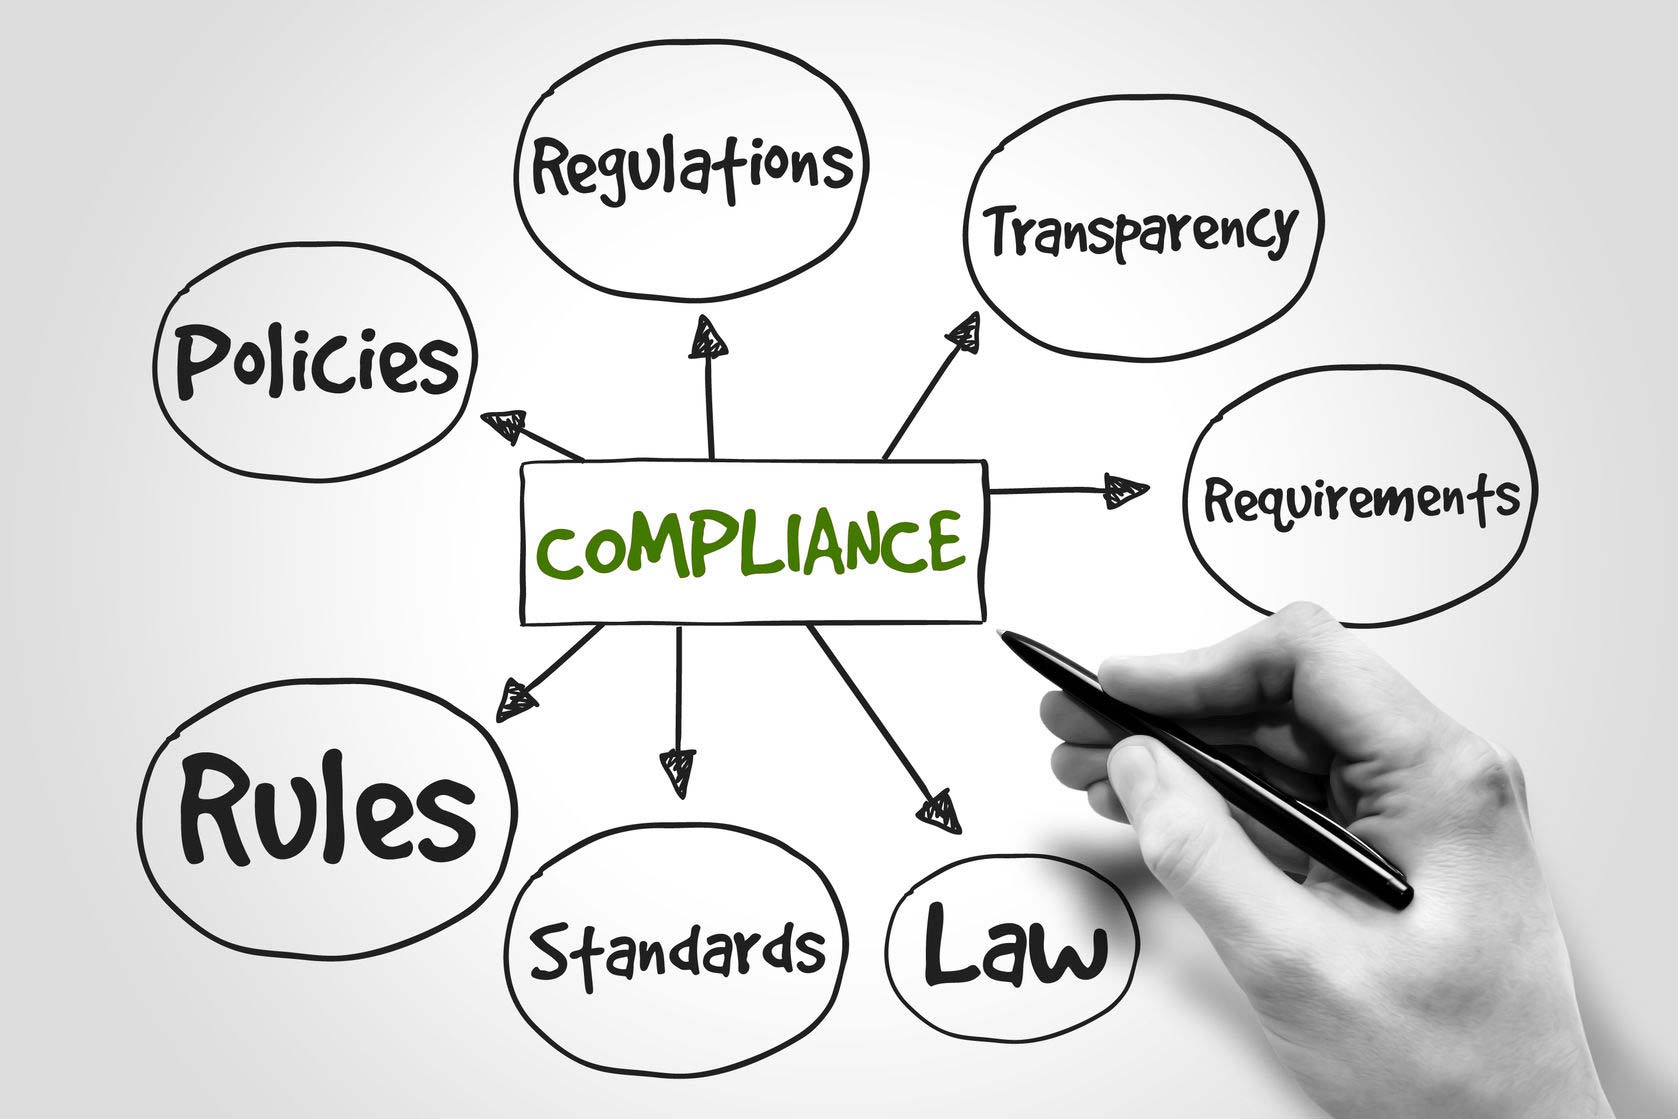 governance principles of regulatory compliance requirements The external governance principles discussed in this document are relevant to regulators regardless of institutional form  it is important for regulators to ensure their obligations to.